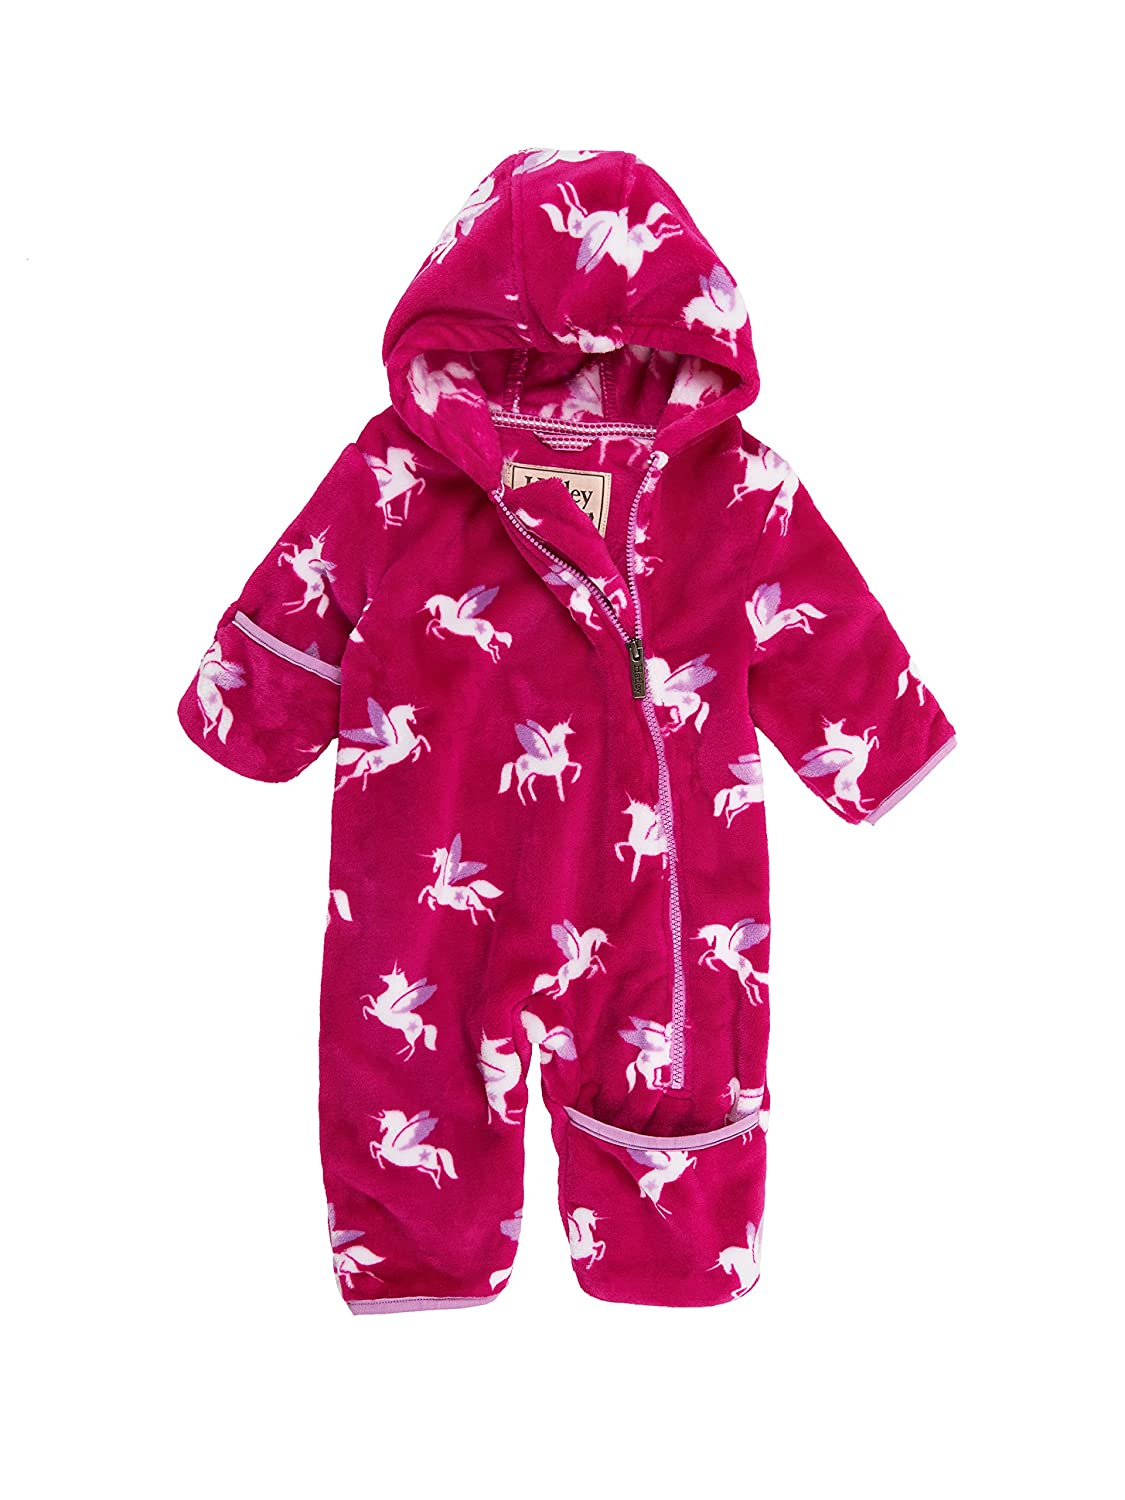 Hatley Baby Girls' Mini Fuzzy Fleece Bundlers Snowsuit PB0UNCO263